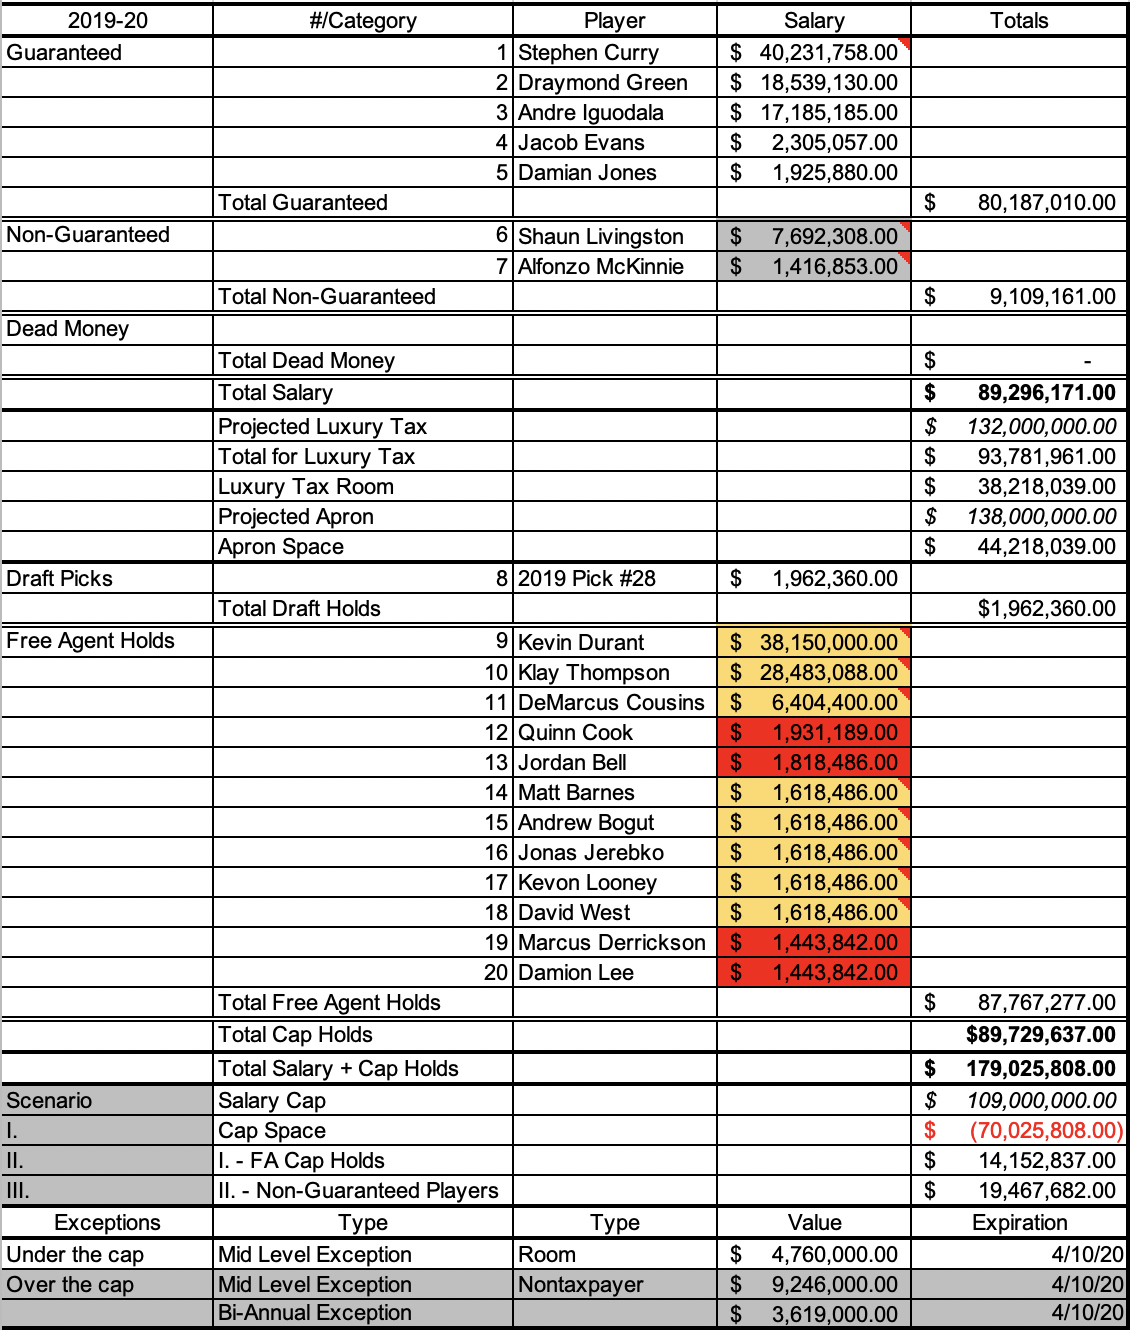 Warriors 2019-20 payroll. This is assuming Kevin Durant opts out of his $31.5 million player option.